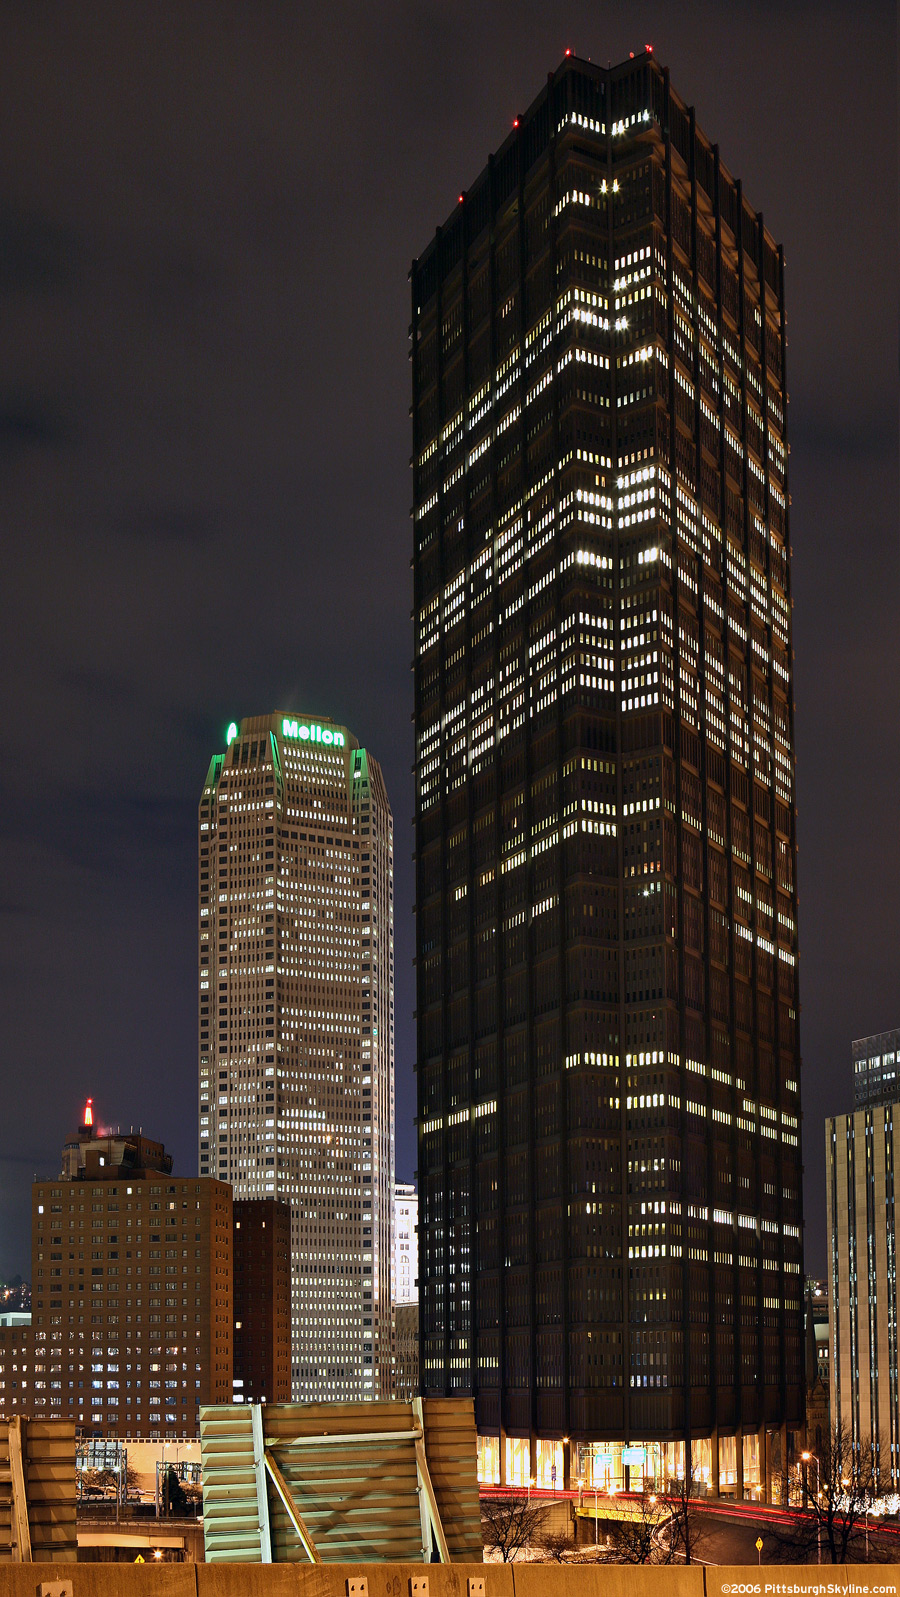 US Steel Tower at night